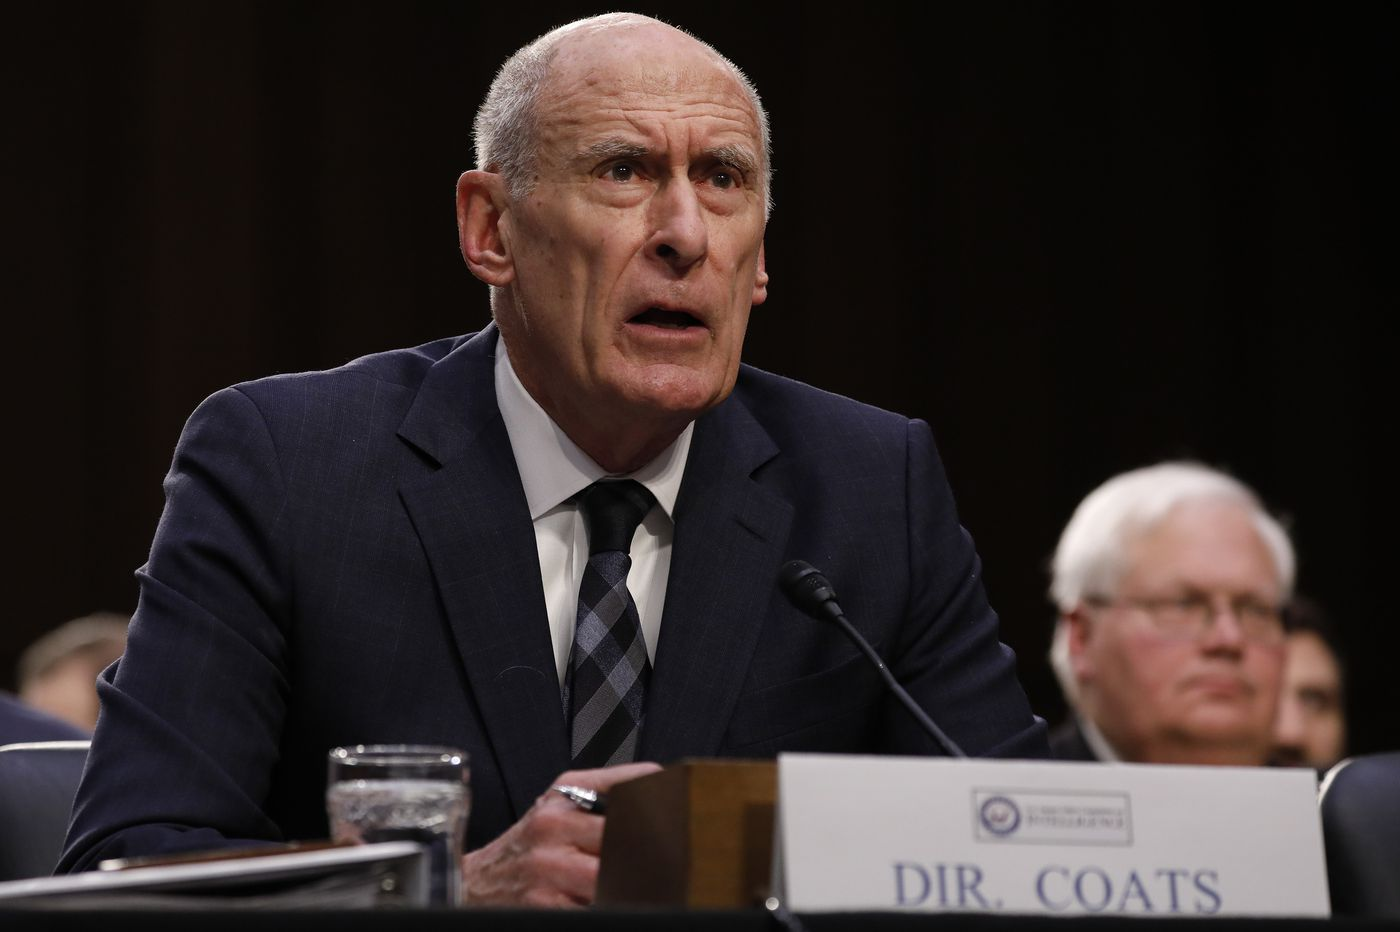 Testimony by intelligence chiefs on global threats highlights differences with president